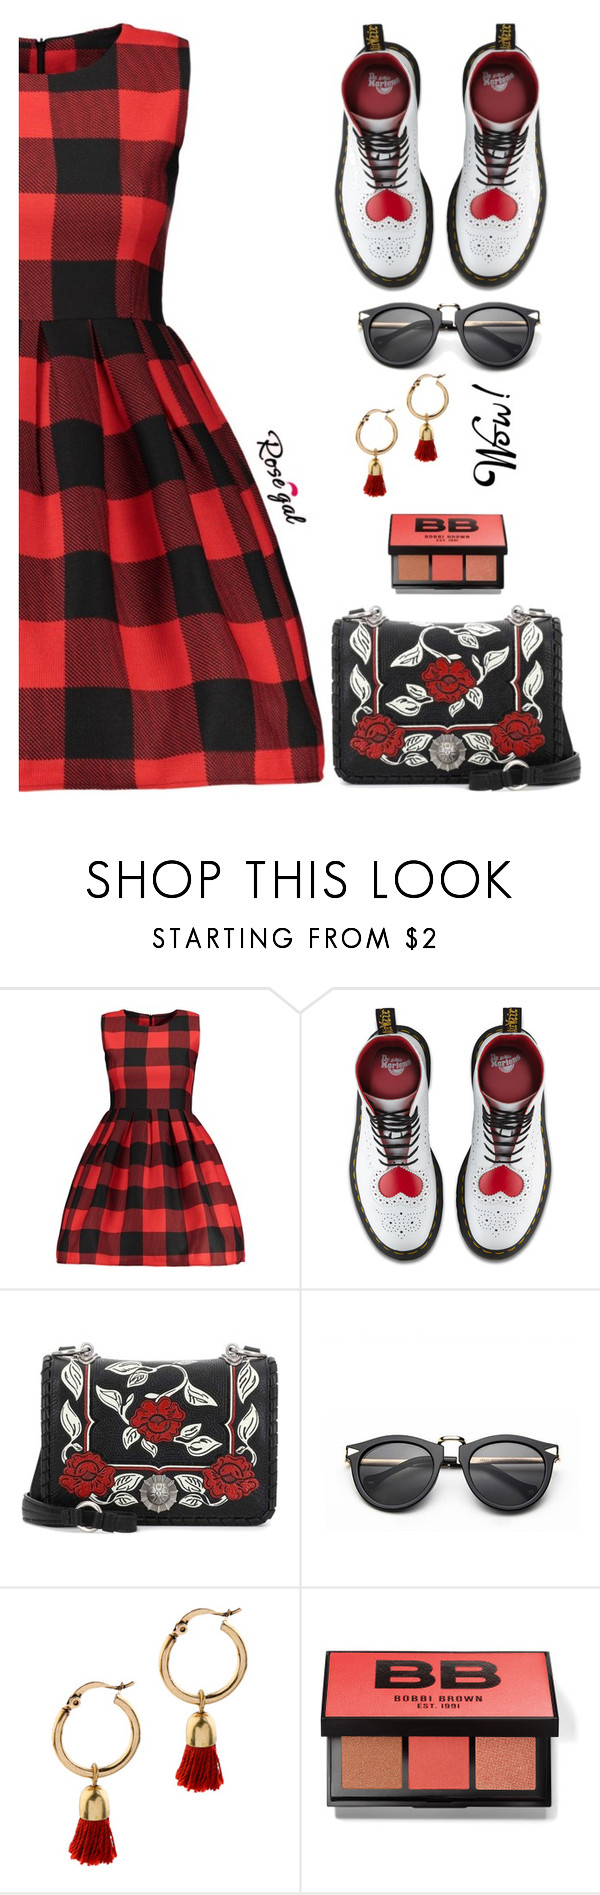 """73. Rosegal plaid dress"" by wannanna ❤ liked on Polyvore featuring Dr. Martens, Miu Miu and Bobbi Brown Cosmetics"